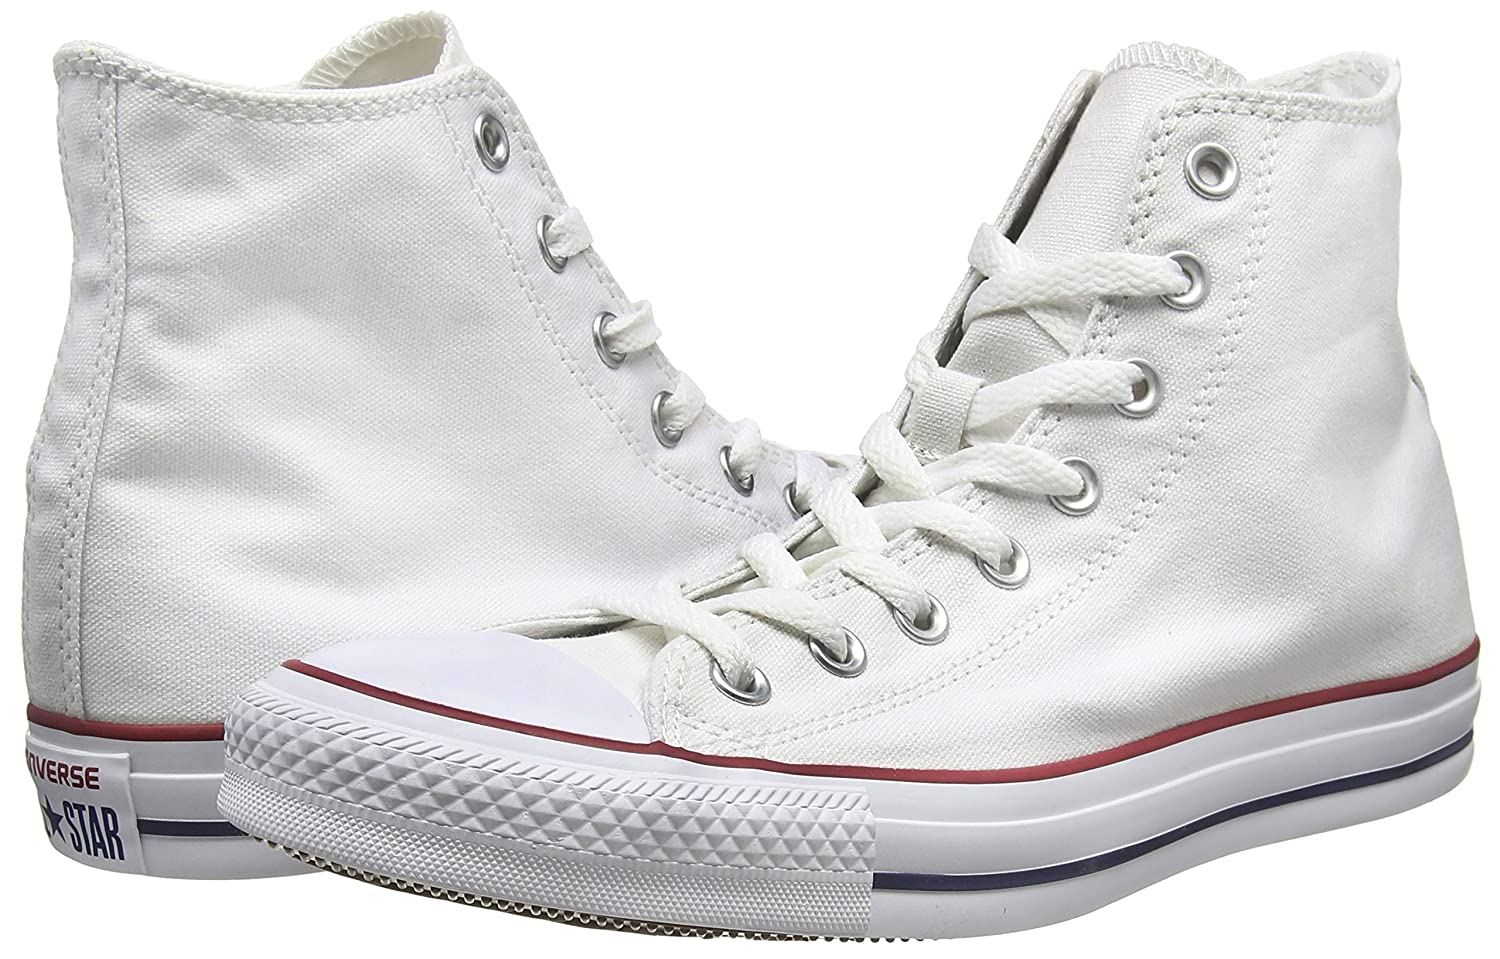 Converse Unisex Chuck Sneakers Taylor All-Star High-Top Casual Sneakers Chuck in Classic Style and Color and Durable Canvas Uppers B07996PQKJ 8 B(M) US Women / 6 D(M) US Men|Optical White ff6bb0